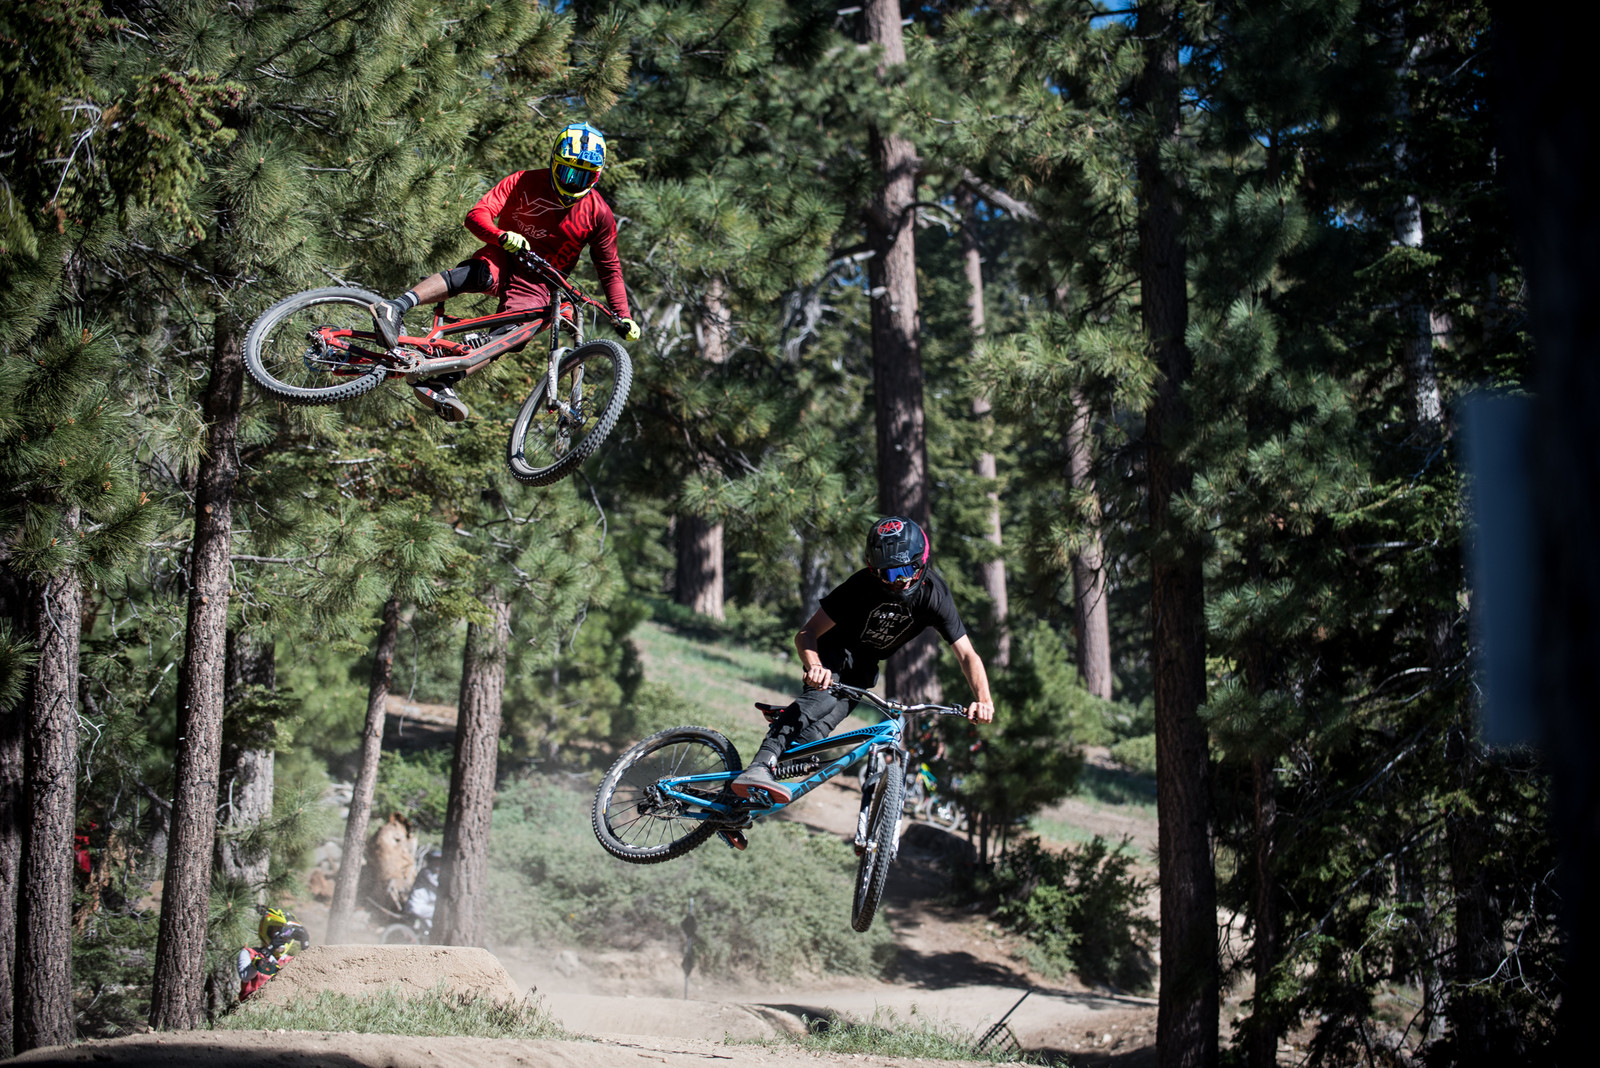 Vital Ditch Day at Snow Summit Photo Gallery - Vital Ditch Day 2017 at Snow Summit Bike Park - Mountain Biking Pictures - Vital MTB